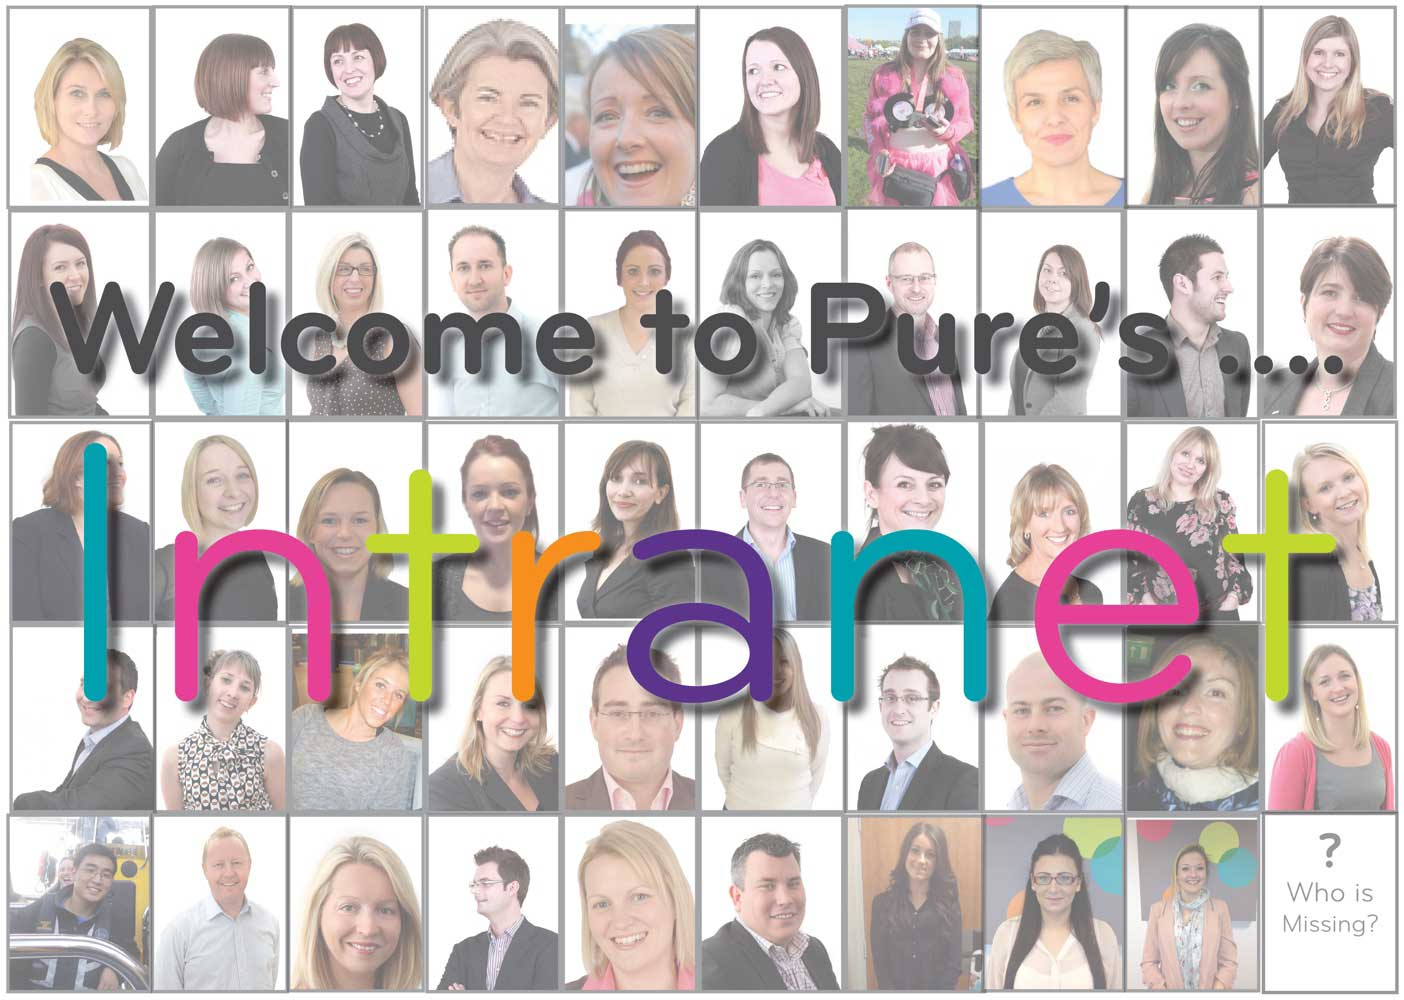 The complete puzzle for the launch of the Pure intranet